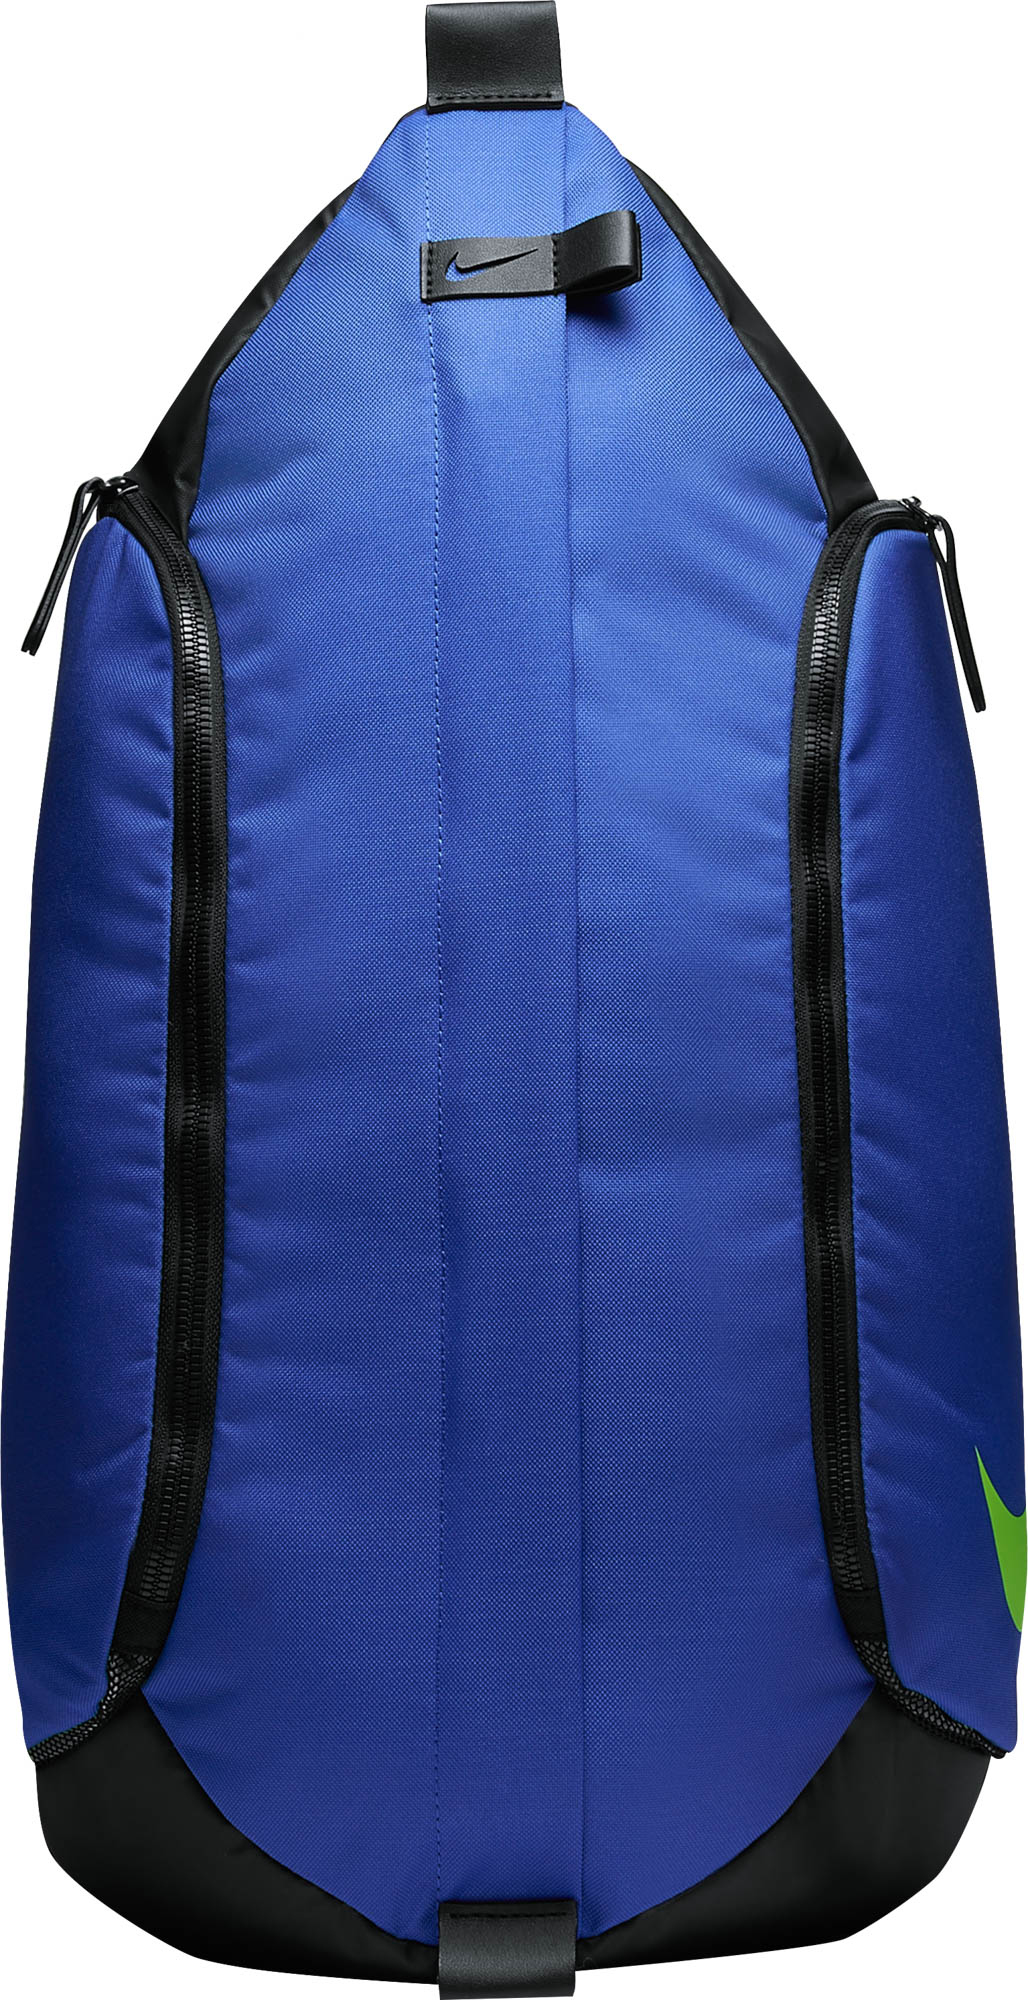 Nike Centerline Backpack - Paramount Blue   Black - Soccer Master ec4cc7800e673